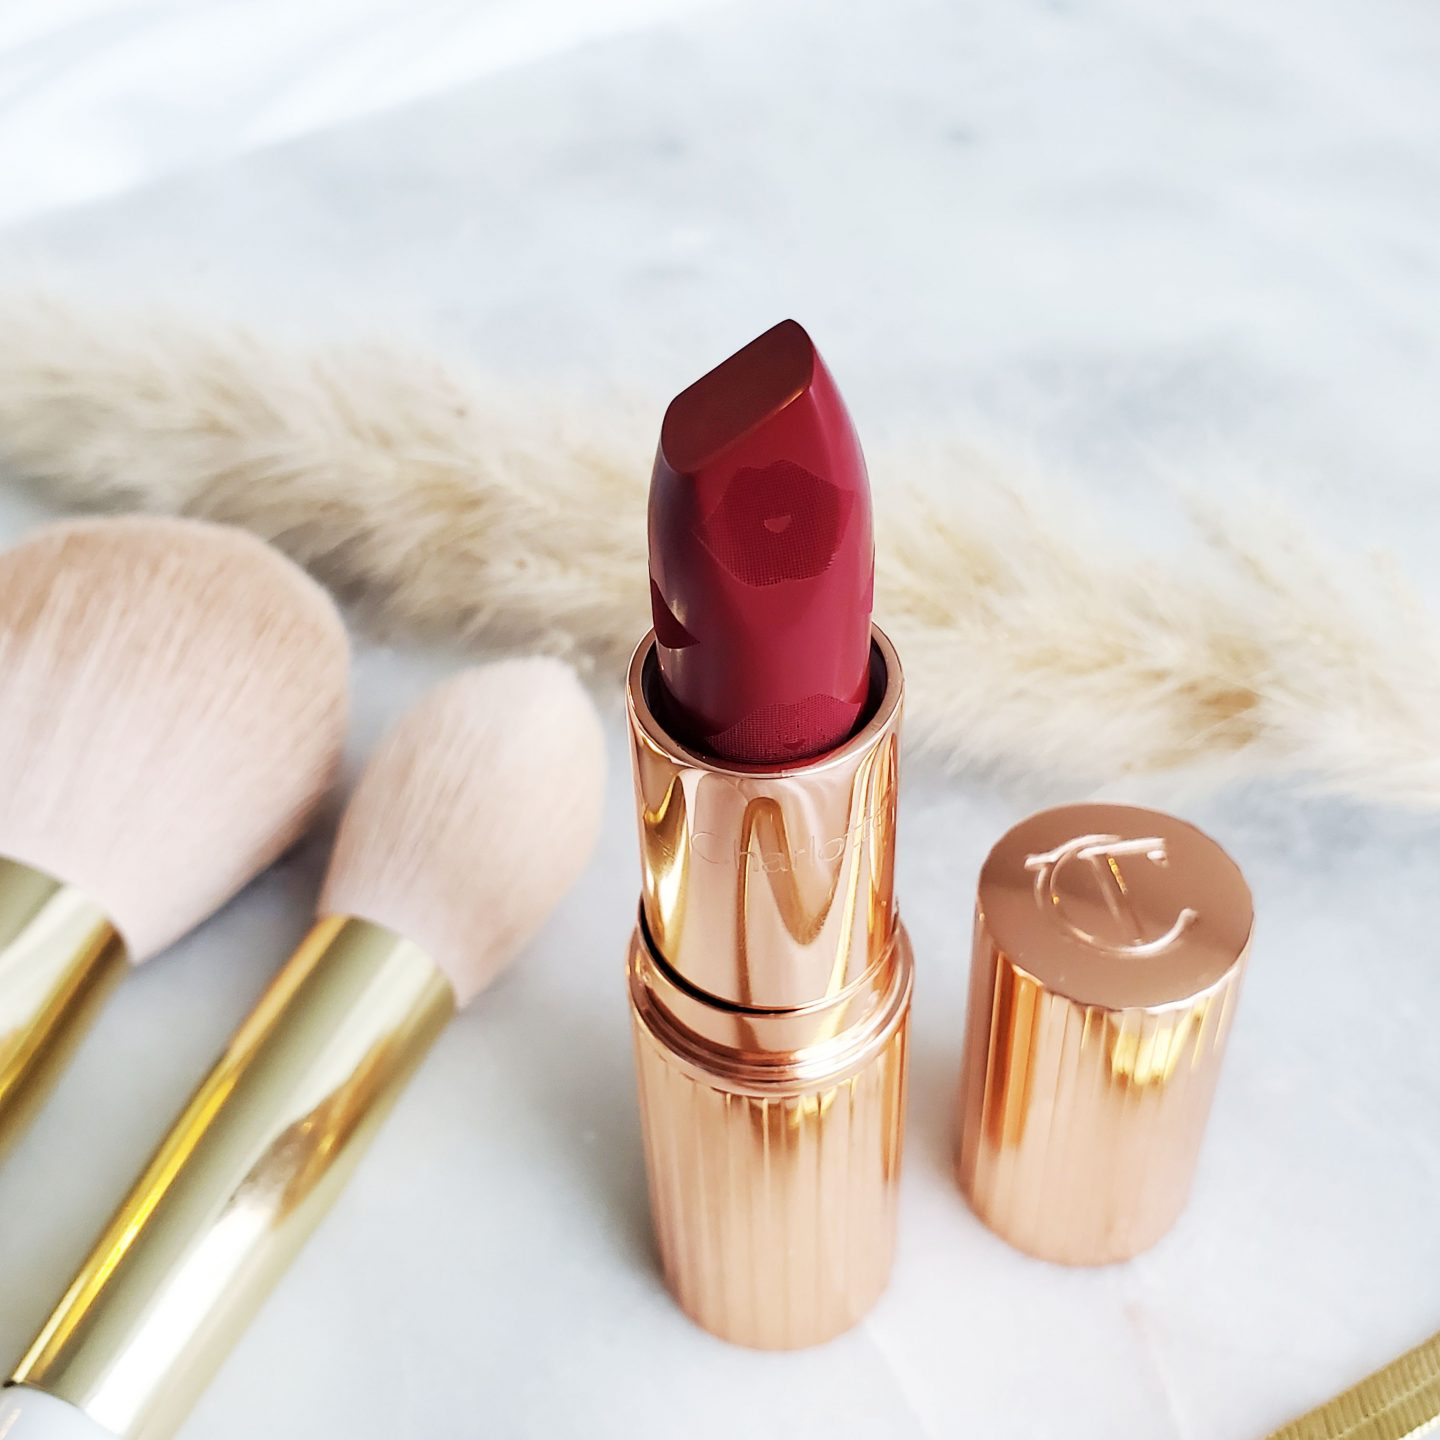 RED LIPSTICKS - CHARLOTTE TILBURY